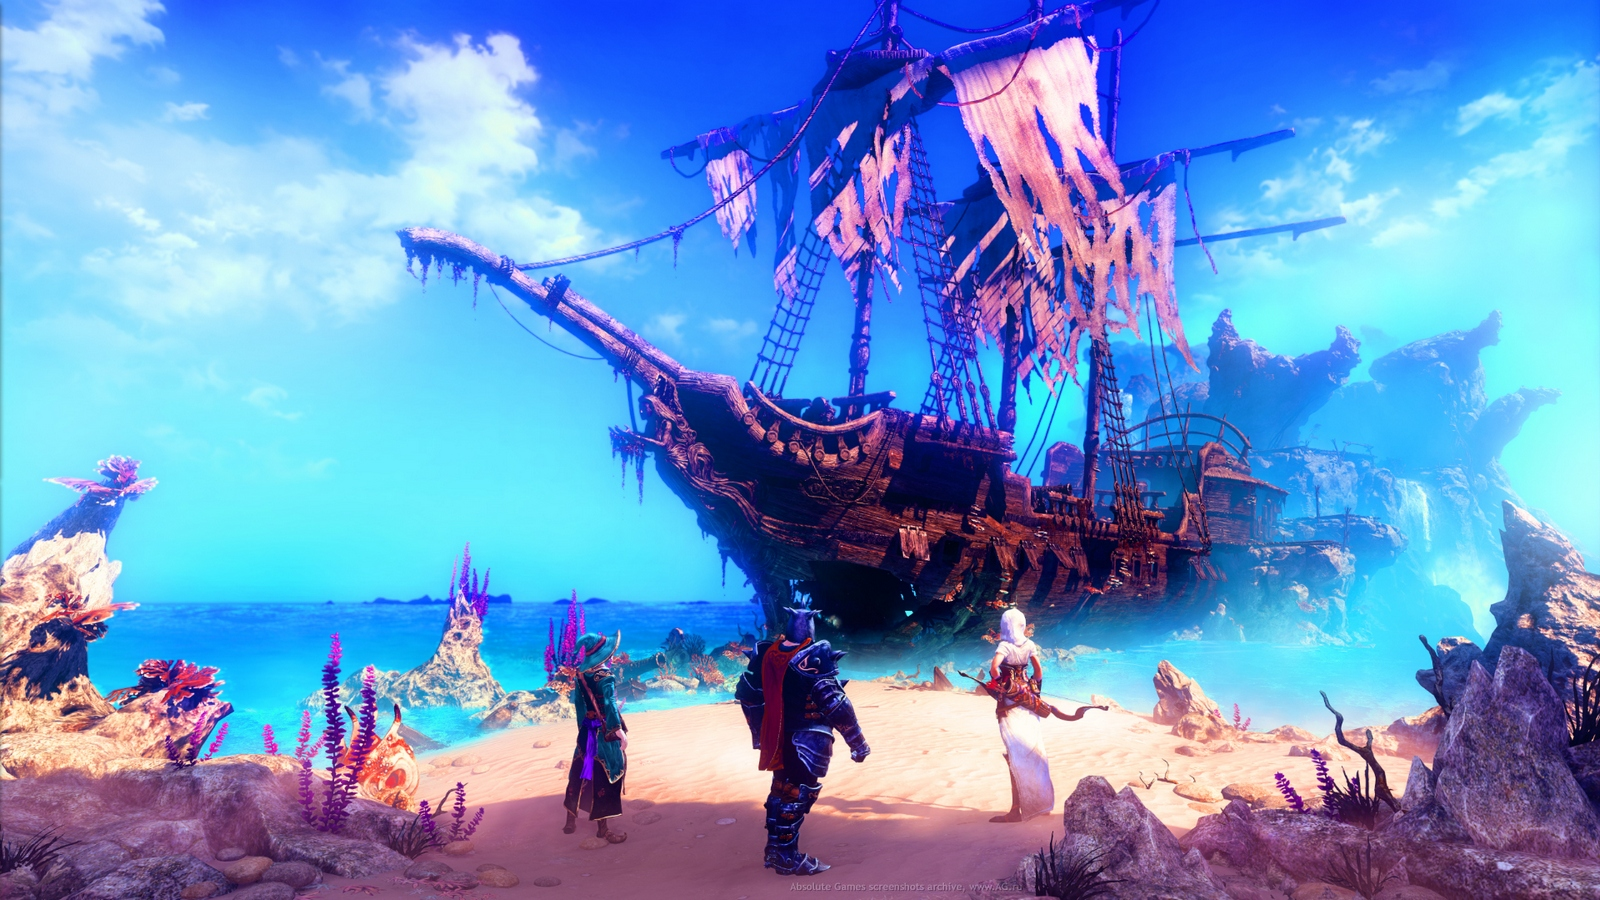 Второй скриншот Trine 3 The Artifacts of Power v0.06 build 2921 (Лицензия)